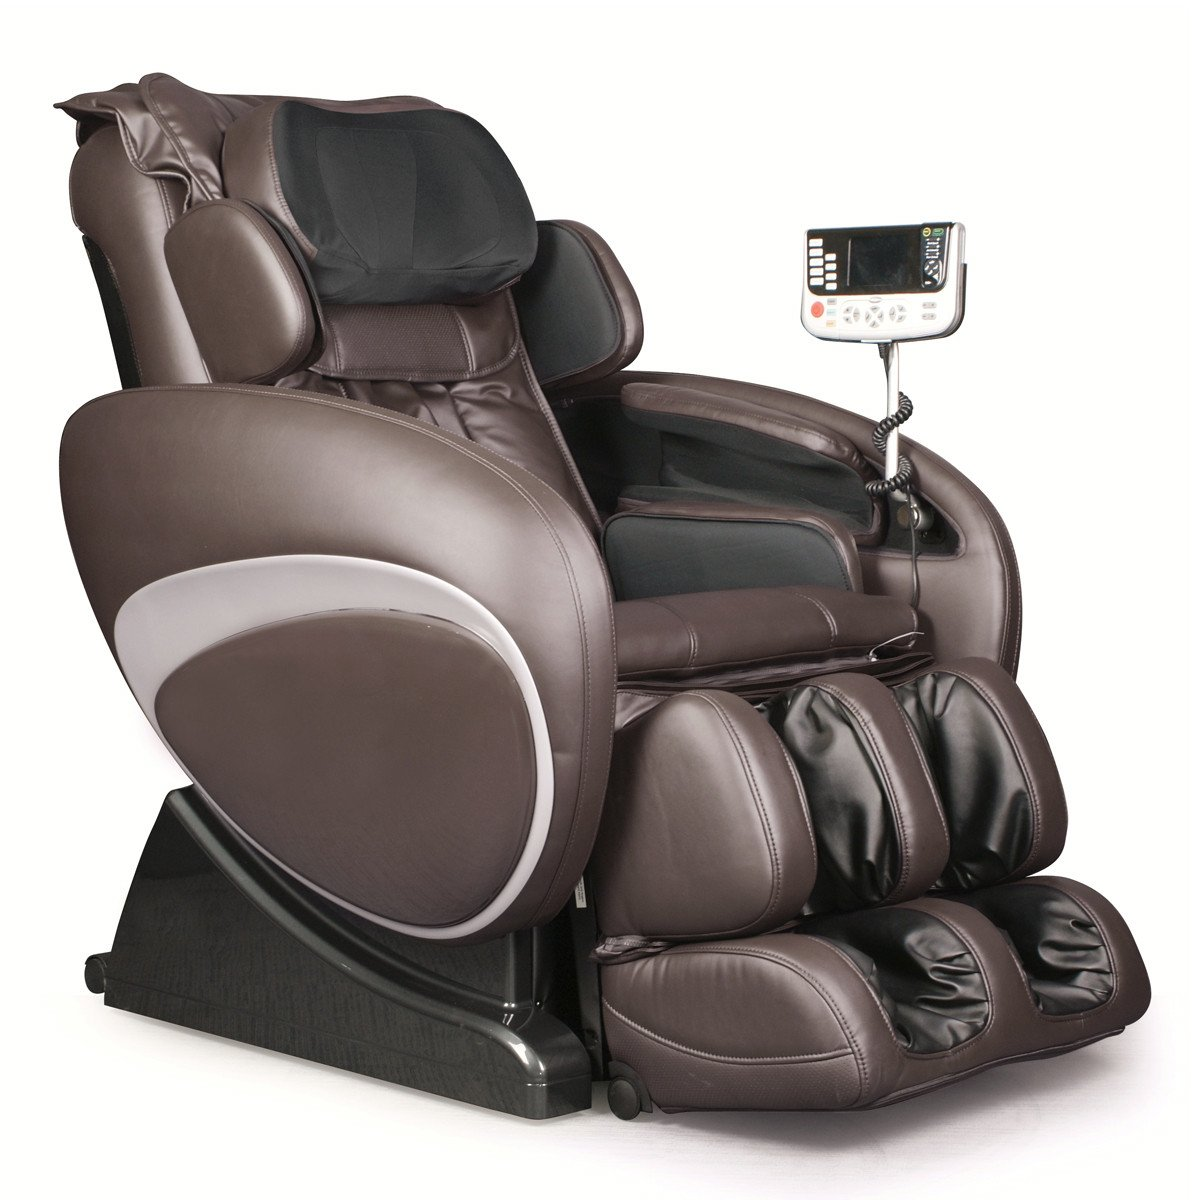 OS-4000T Zero Gravity Massage Chair